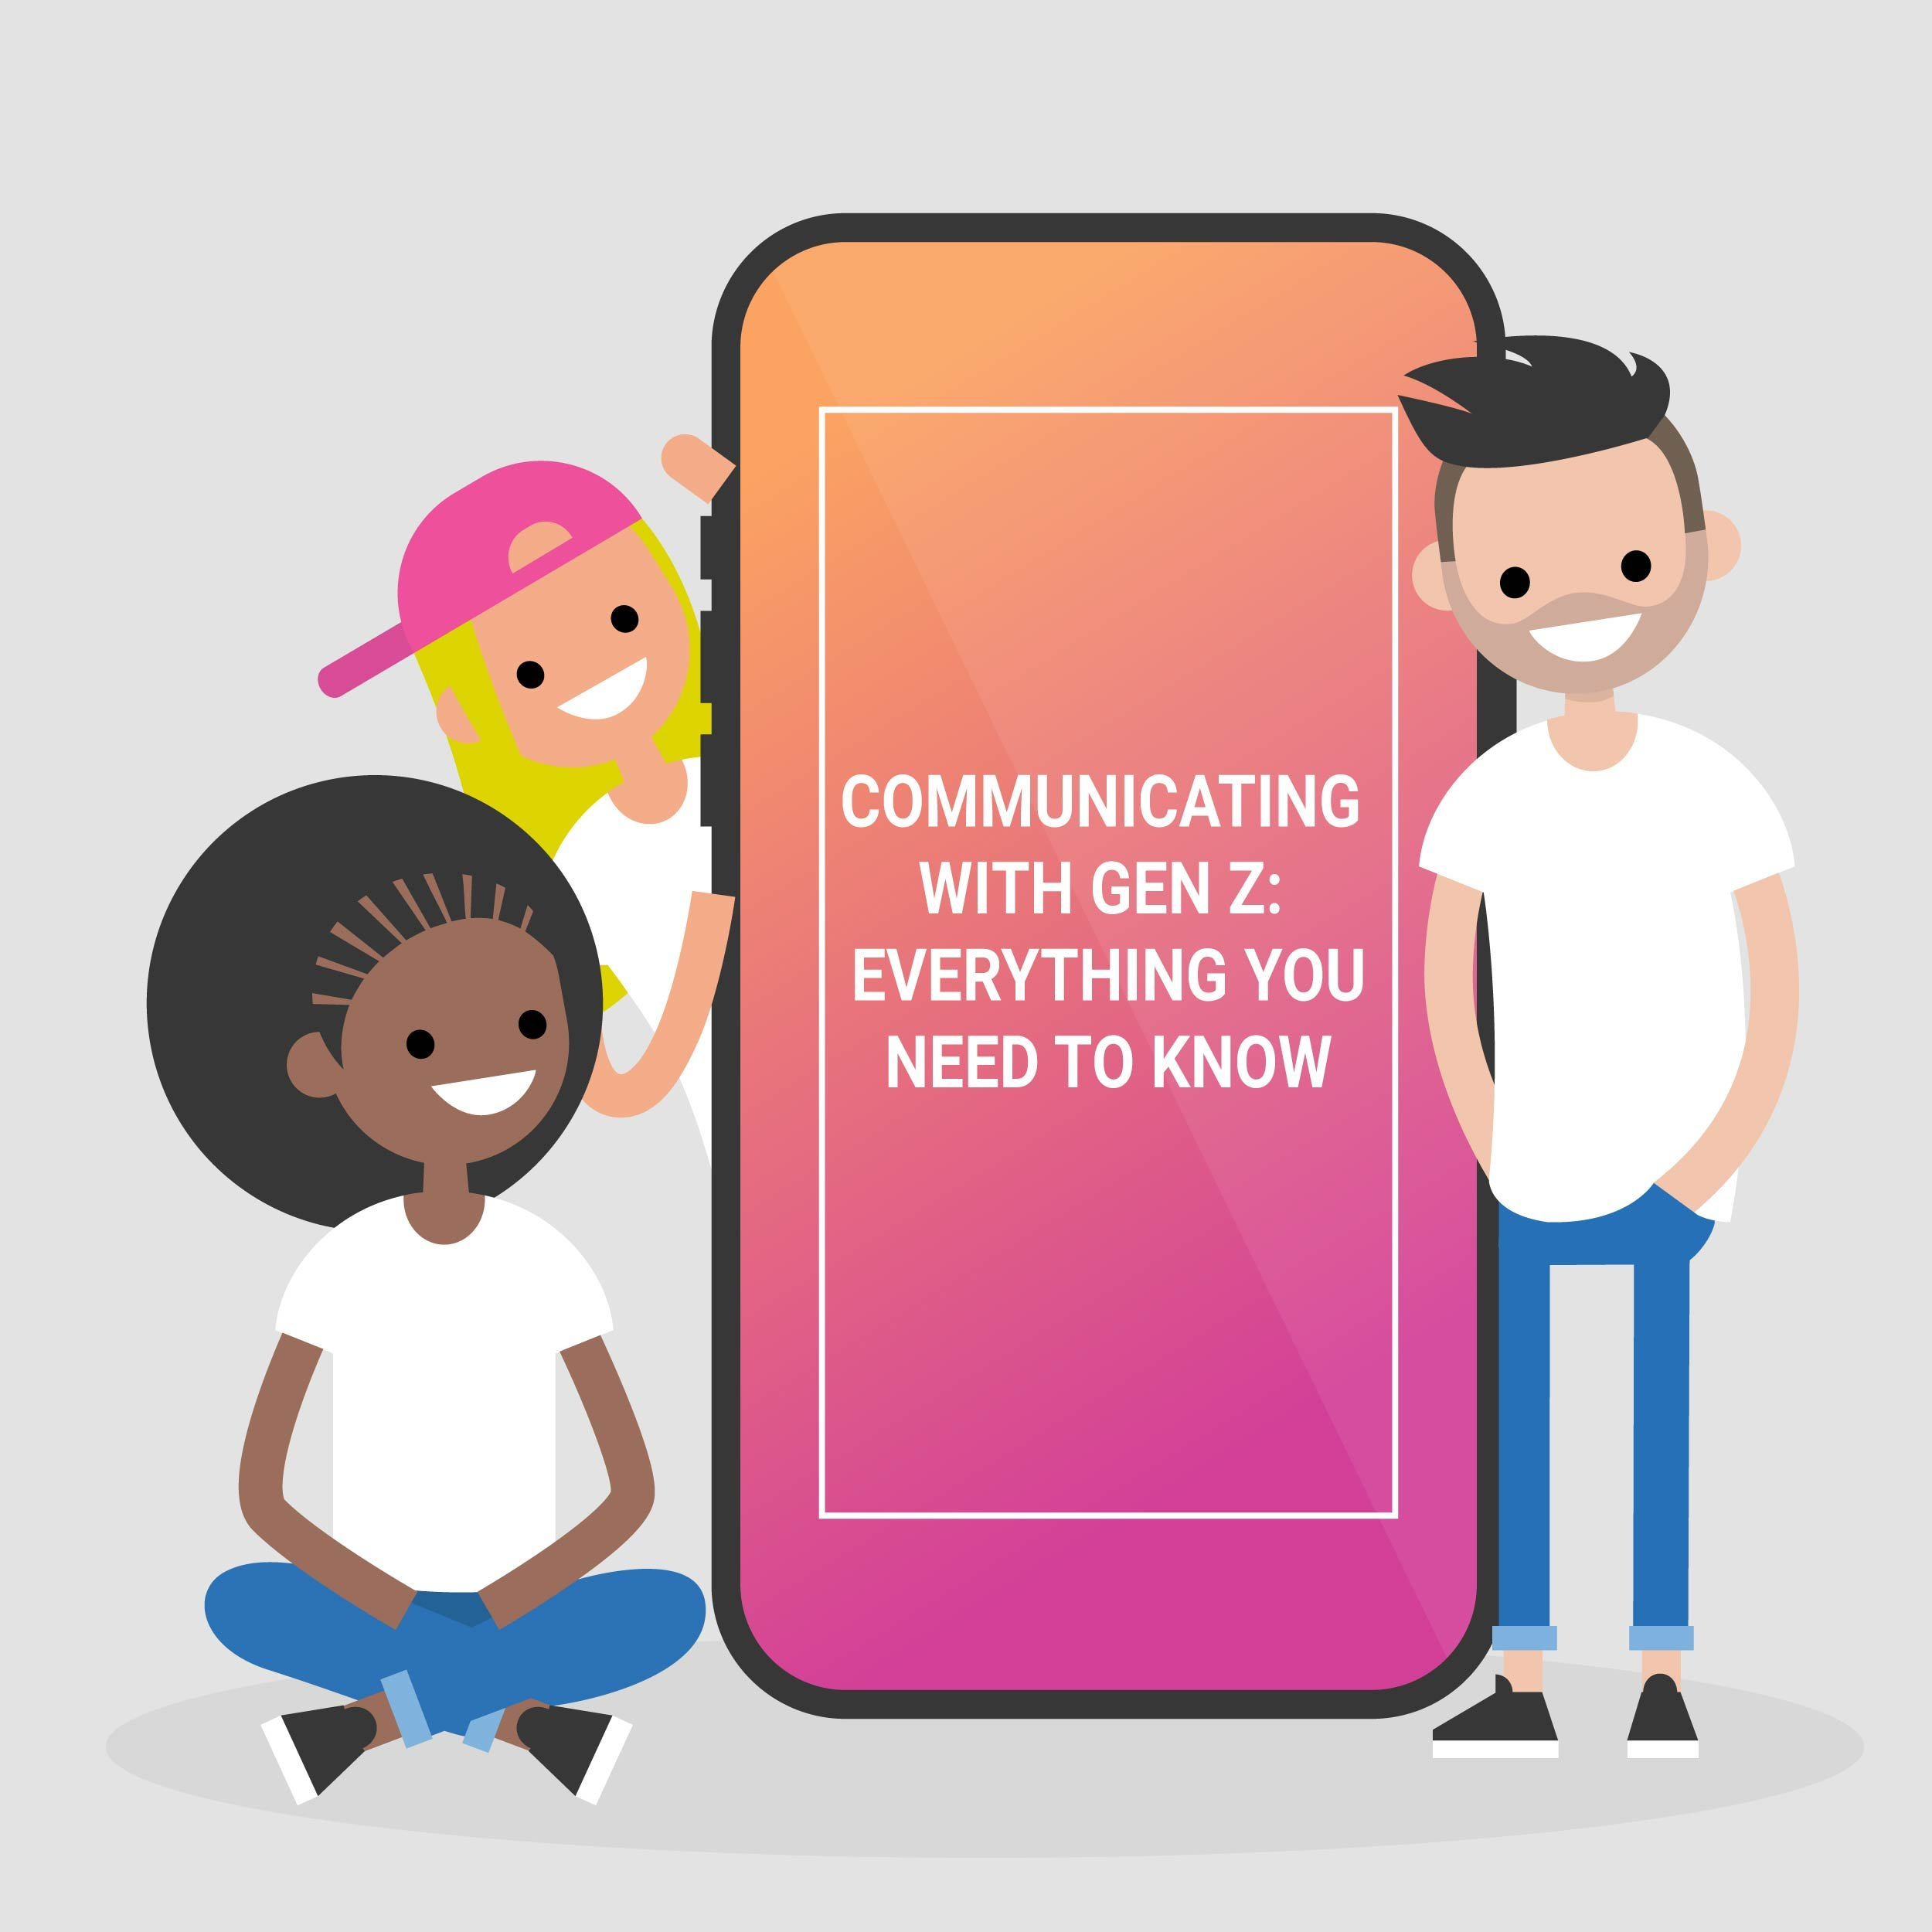 communicating with gen z